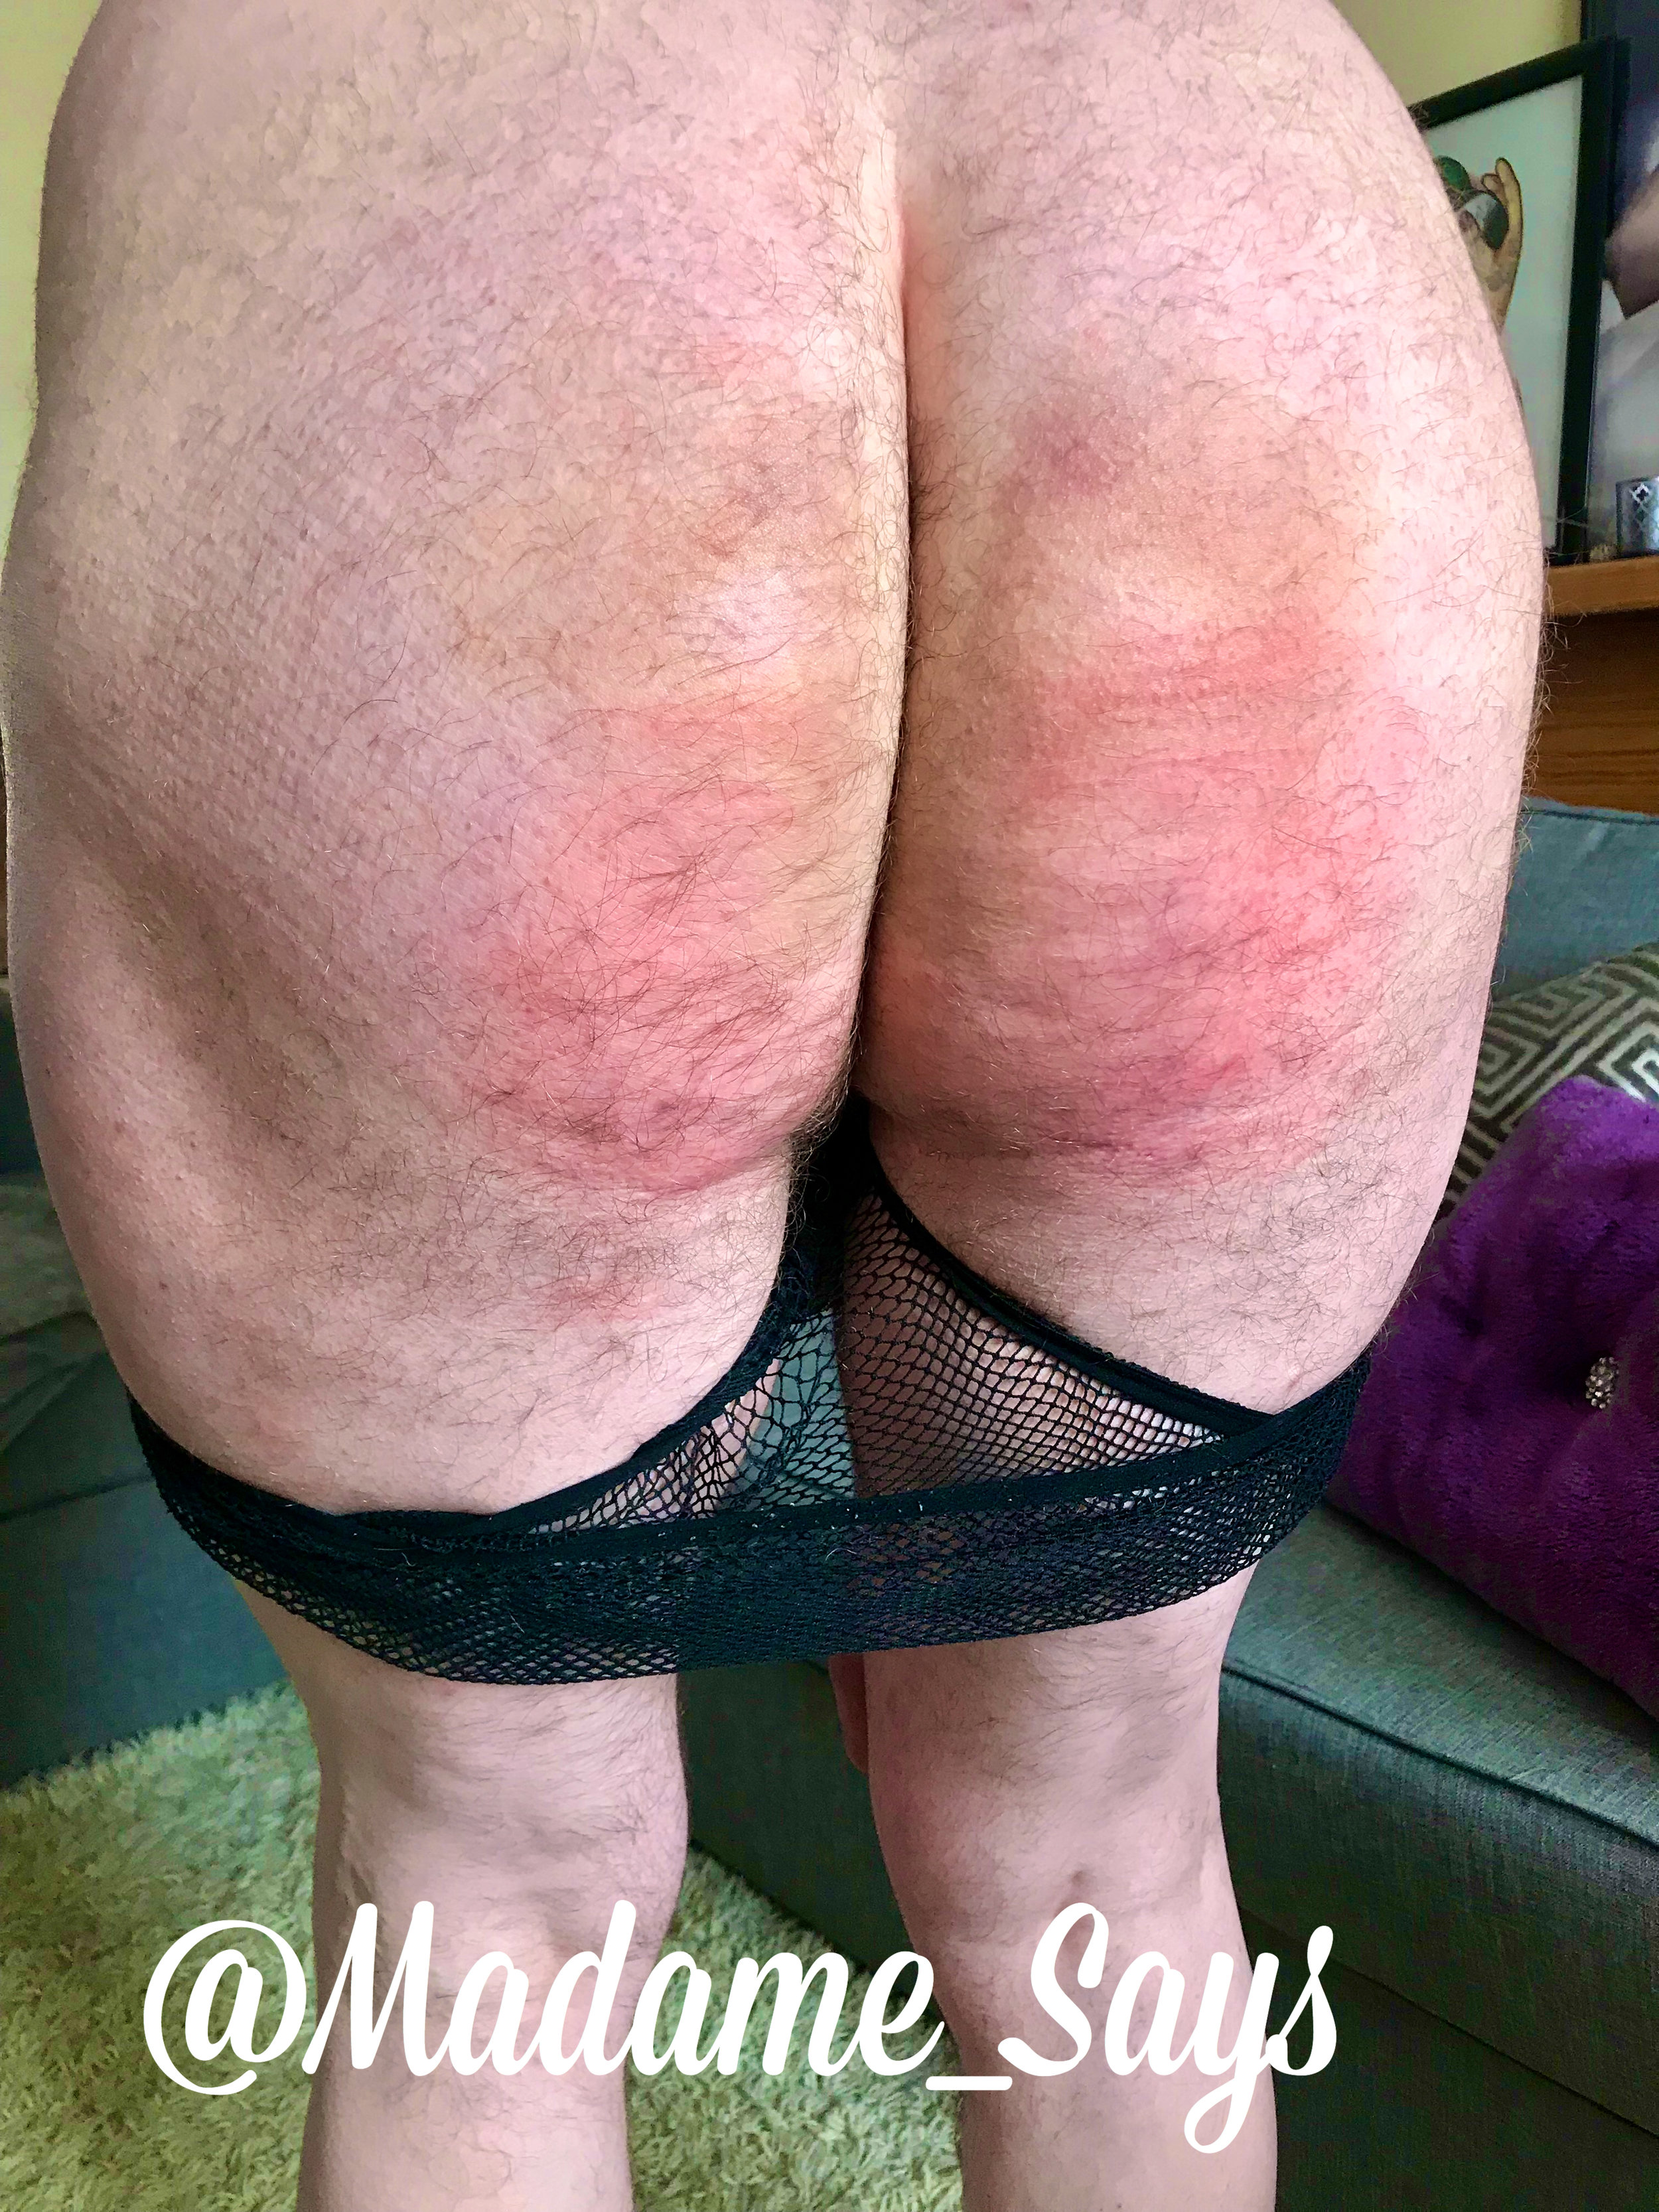 caned-bum